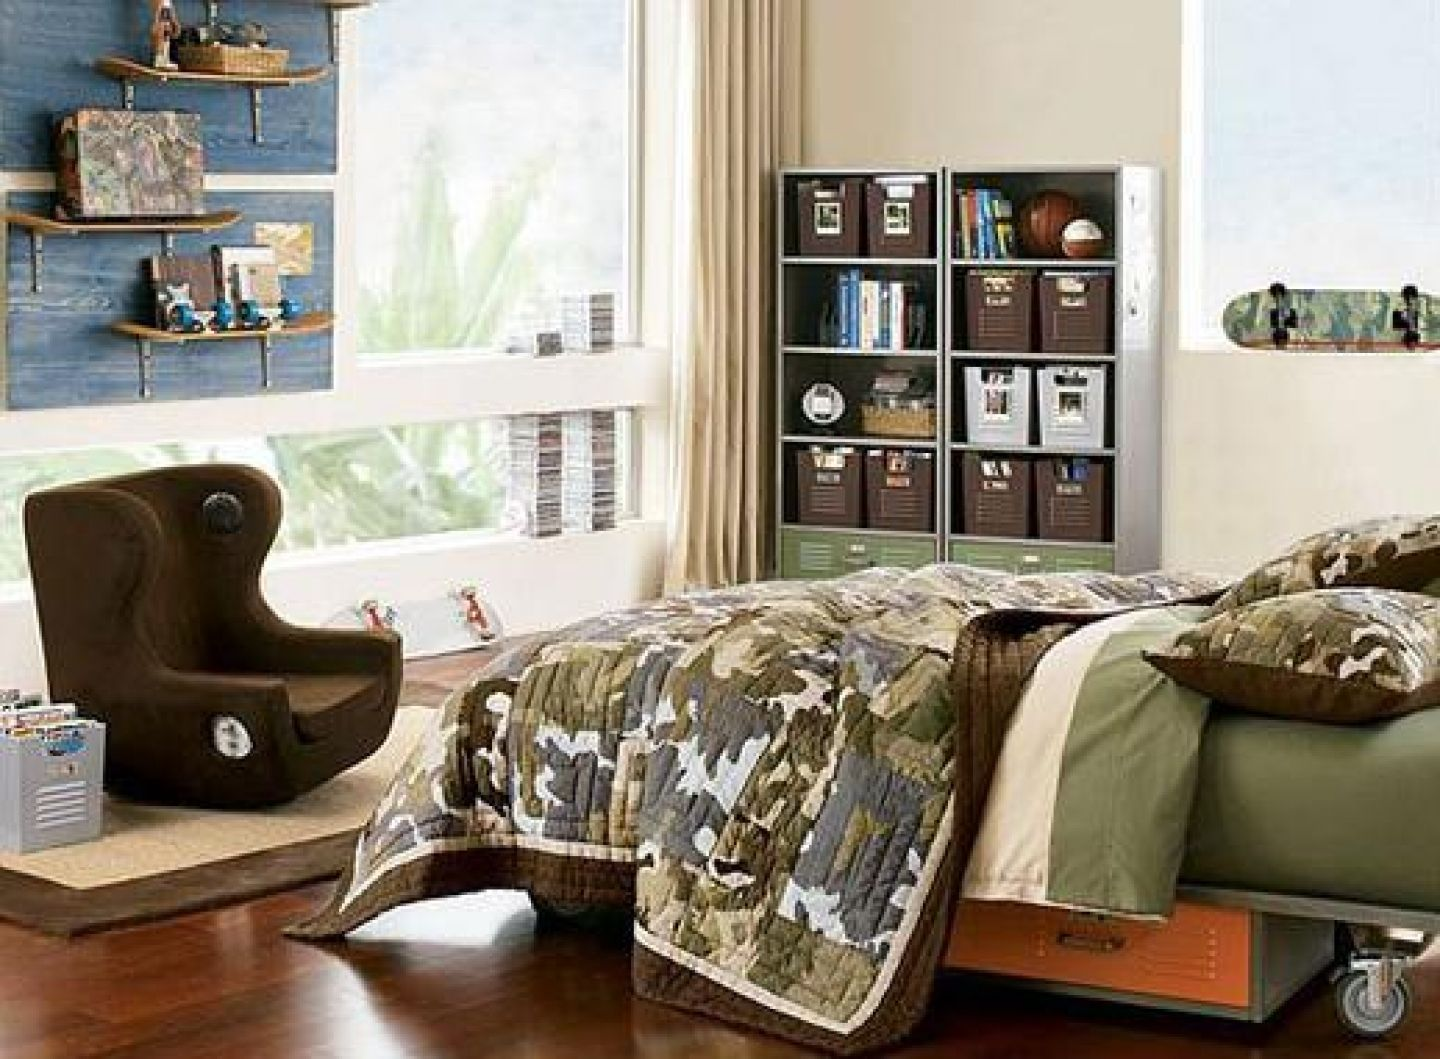 Teenage boys bedroom designs - Teenageboys Bedroom Ideas Bedroom Ideas For Teenage Boys Kids Bedroom Decorating Ideas